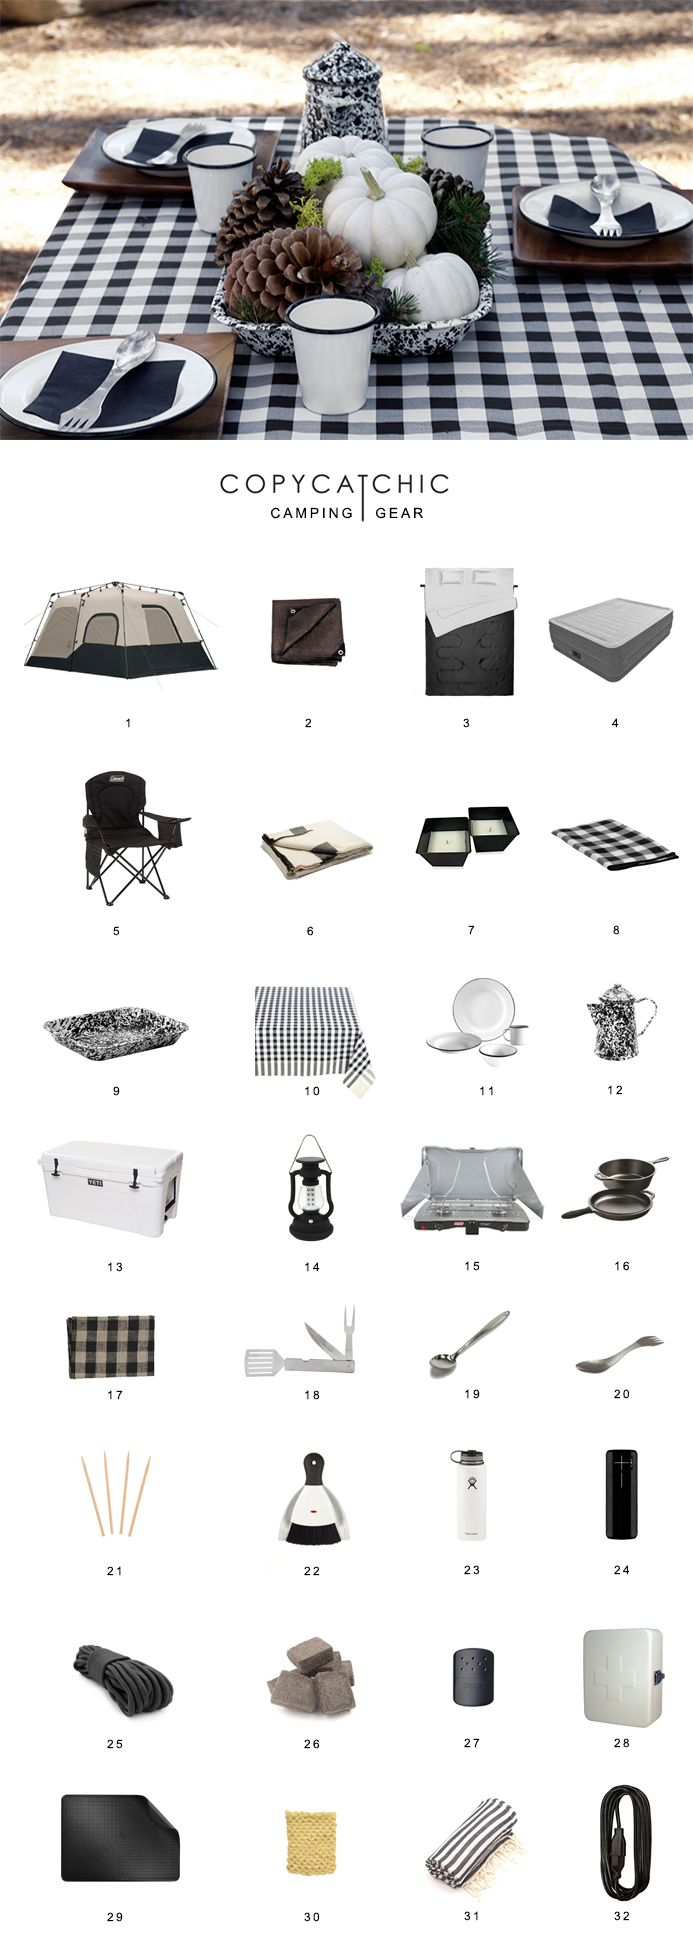 Camping | A complete list of what to pack when going glamping | a comprehensive list of everything you need @copycatchic luxe living for less http://www.copycatchic.com/2016/10/what-to-pack-for-glamping.html?utm_campaign=coschedule&utm_source=pinterest&utm_medium=Copy%20Cat%20Chic&utm_content=What%20to%20pack%20for%20camping